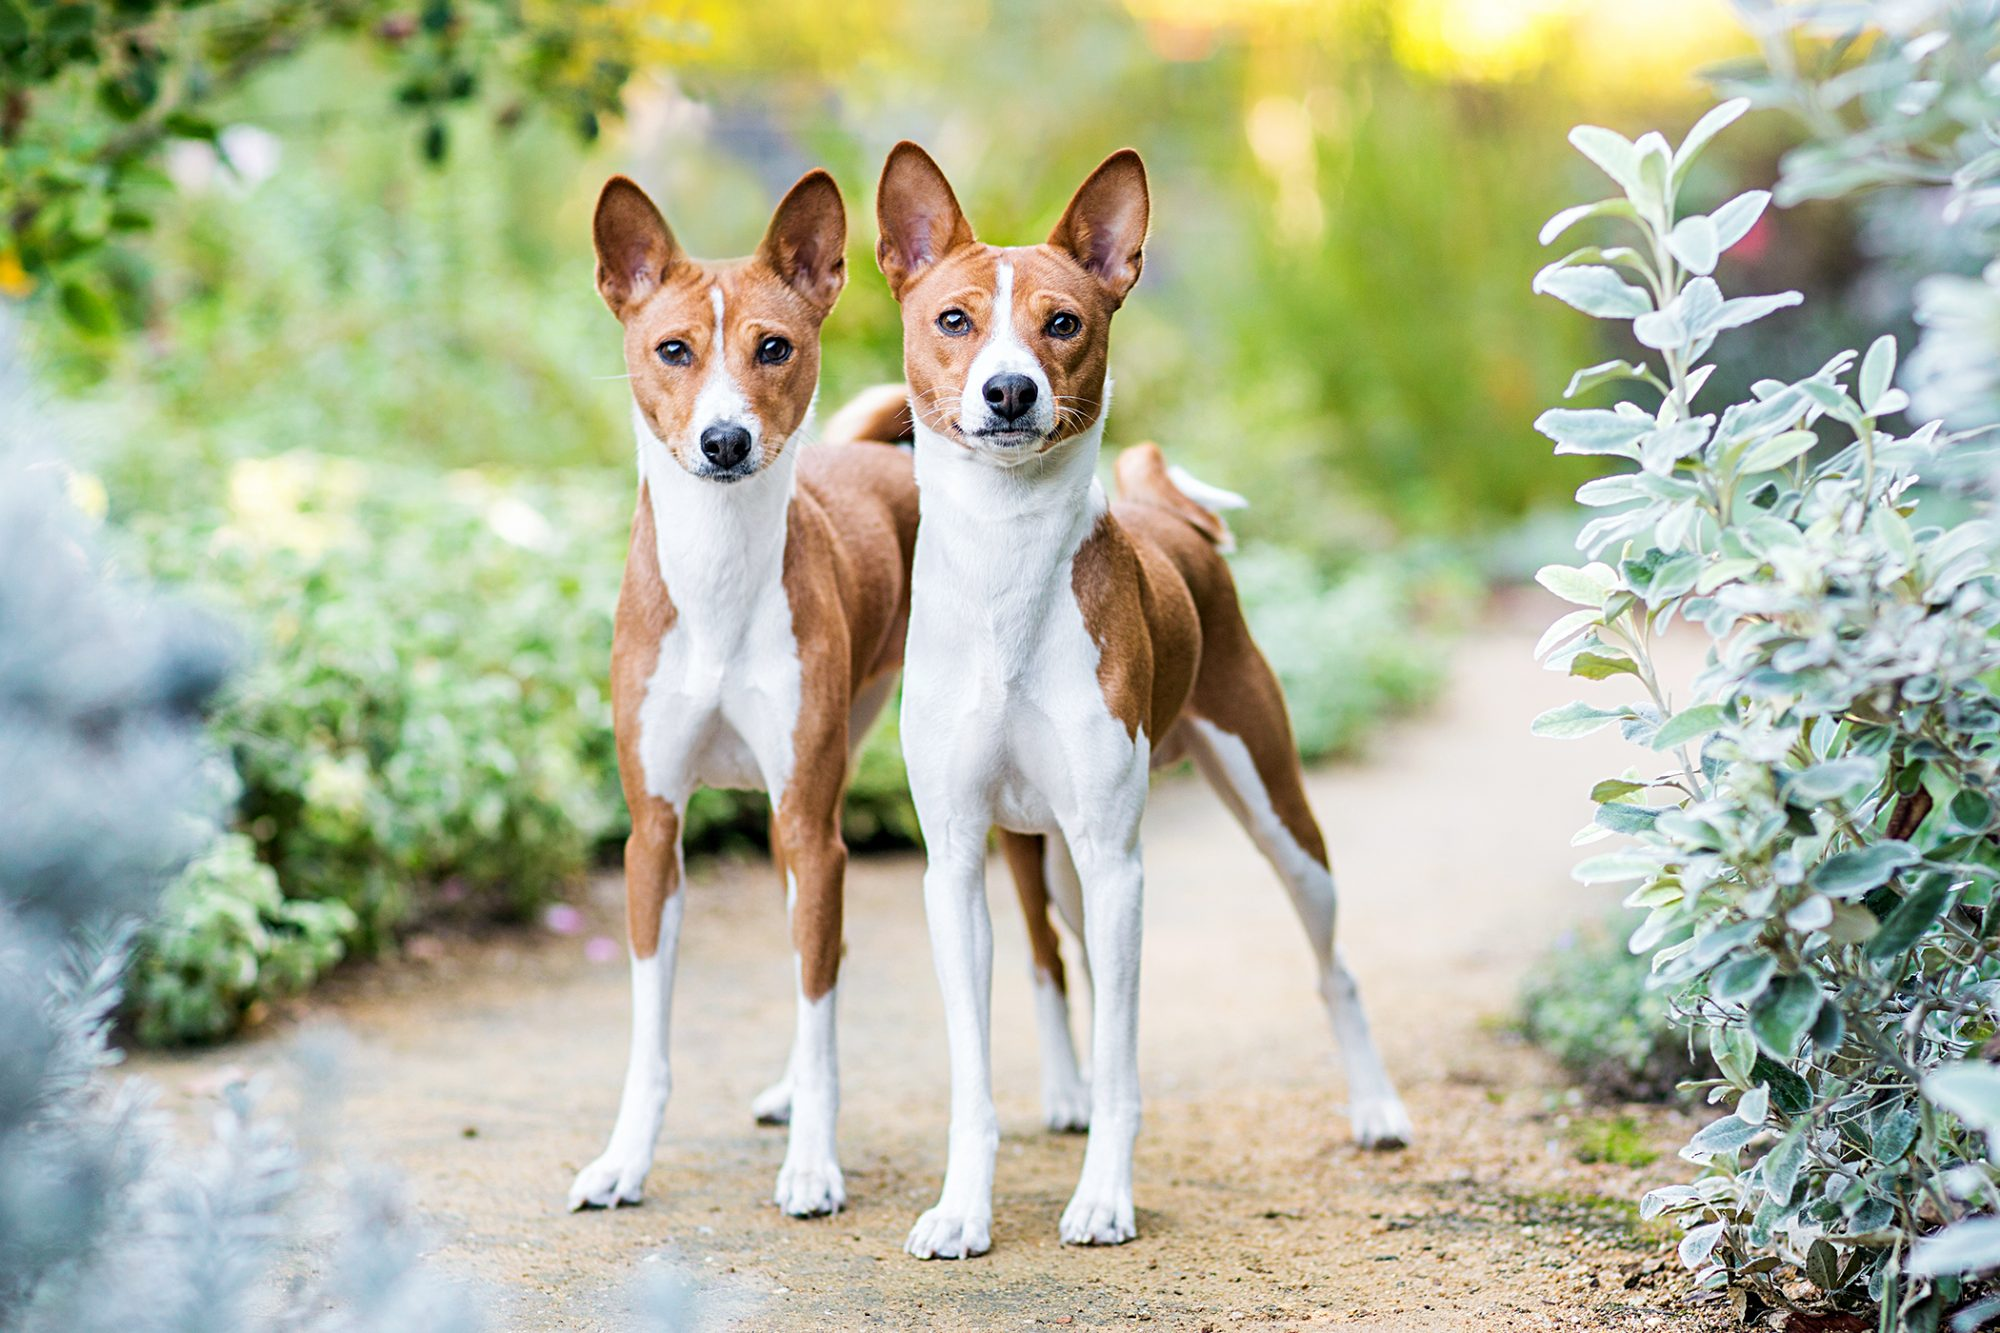 two basenji dogs standing together on a trail between green bushes